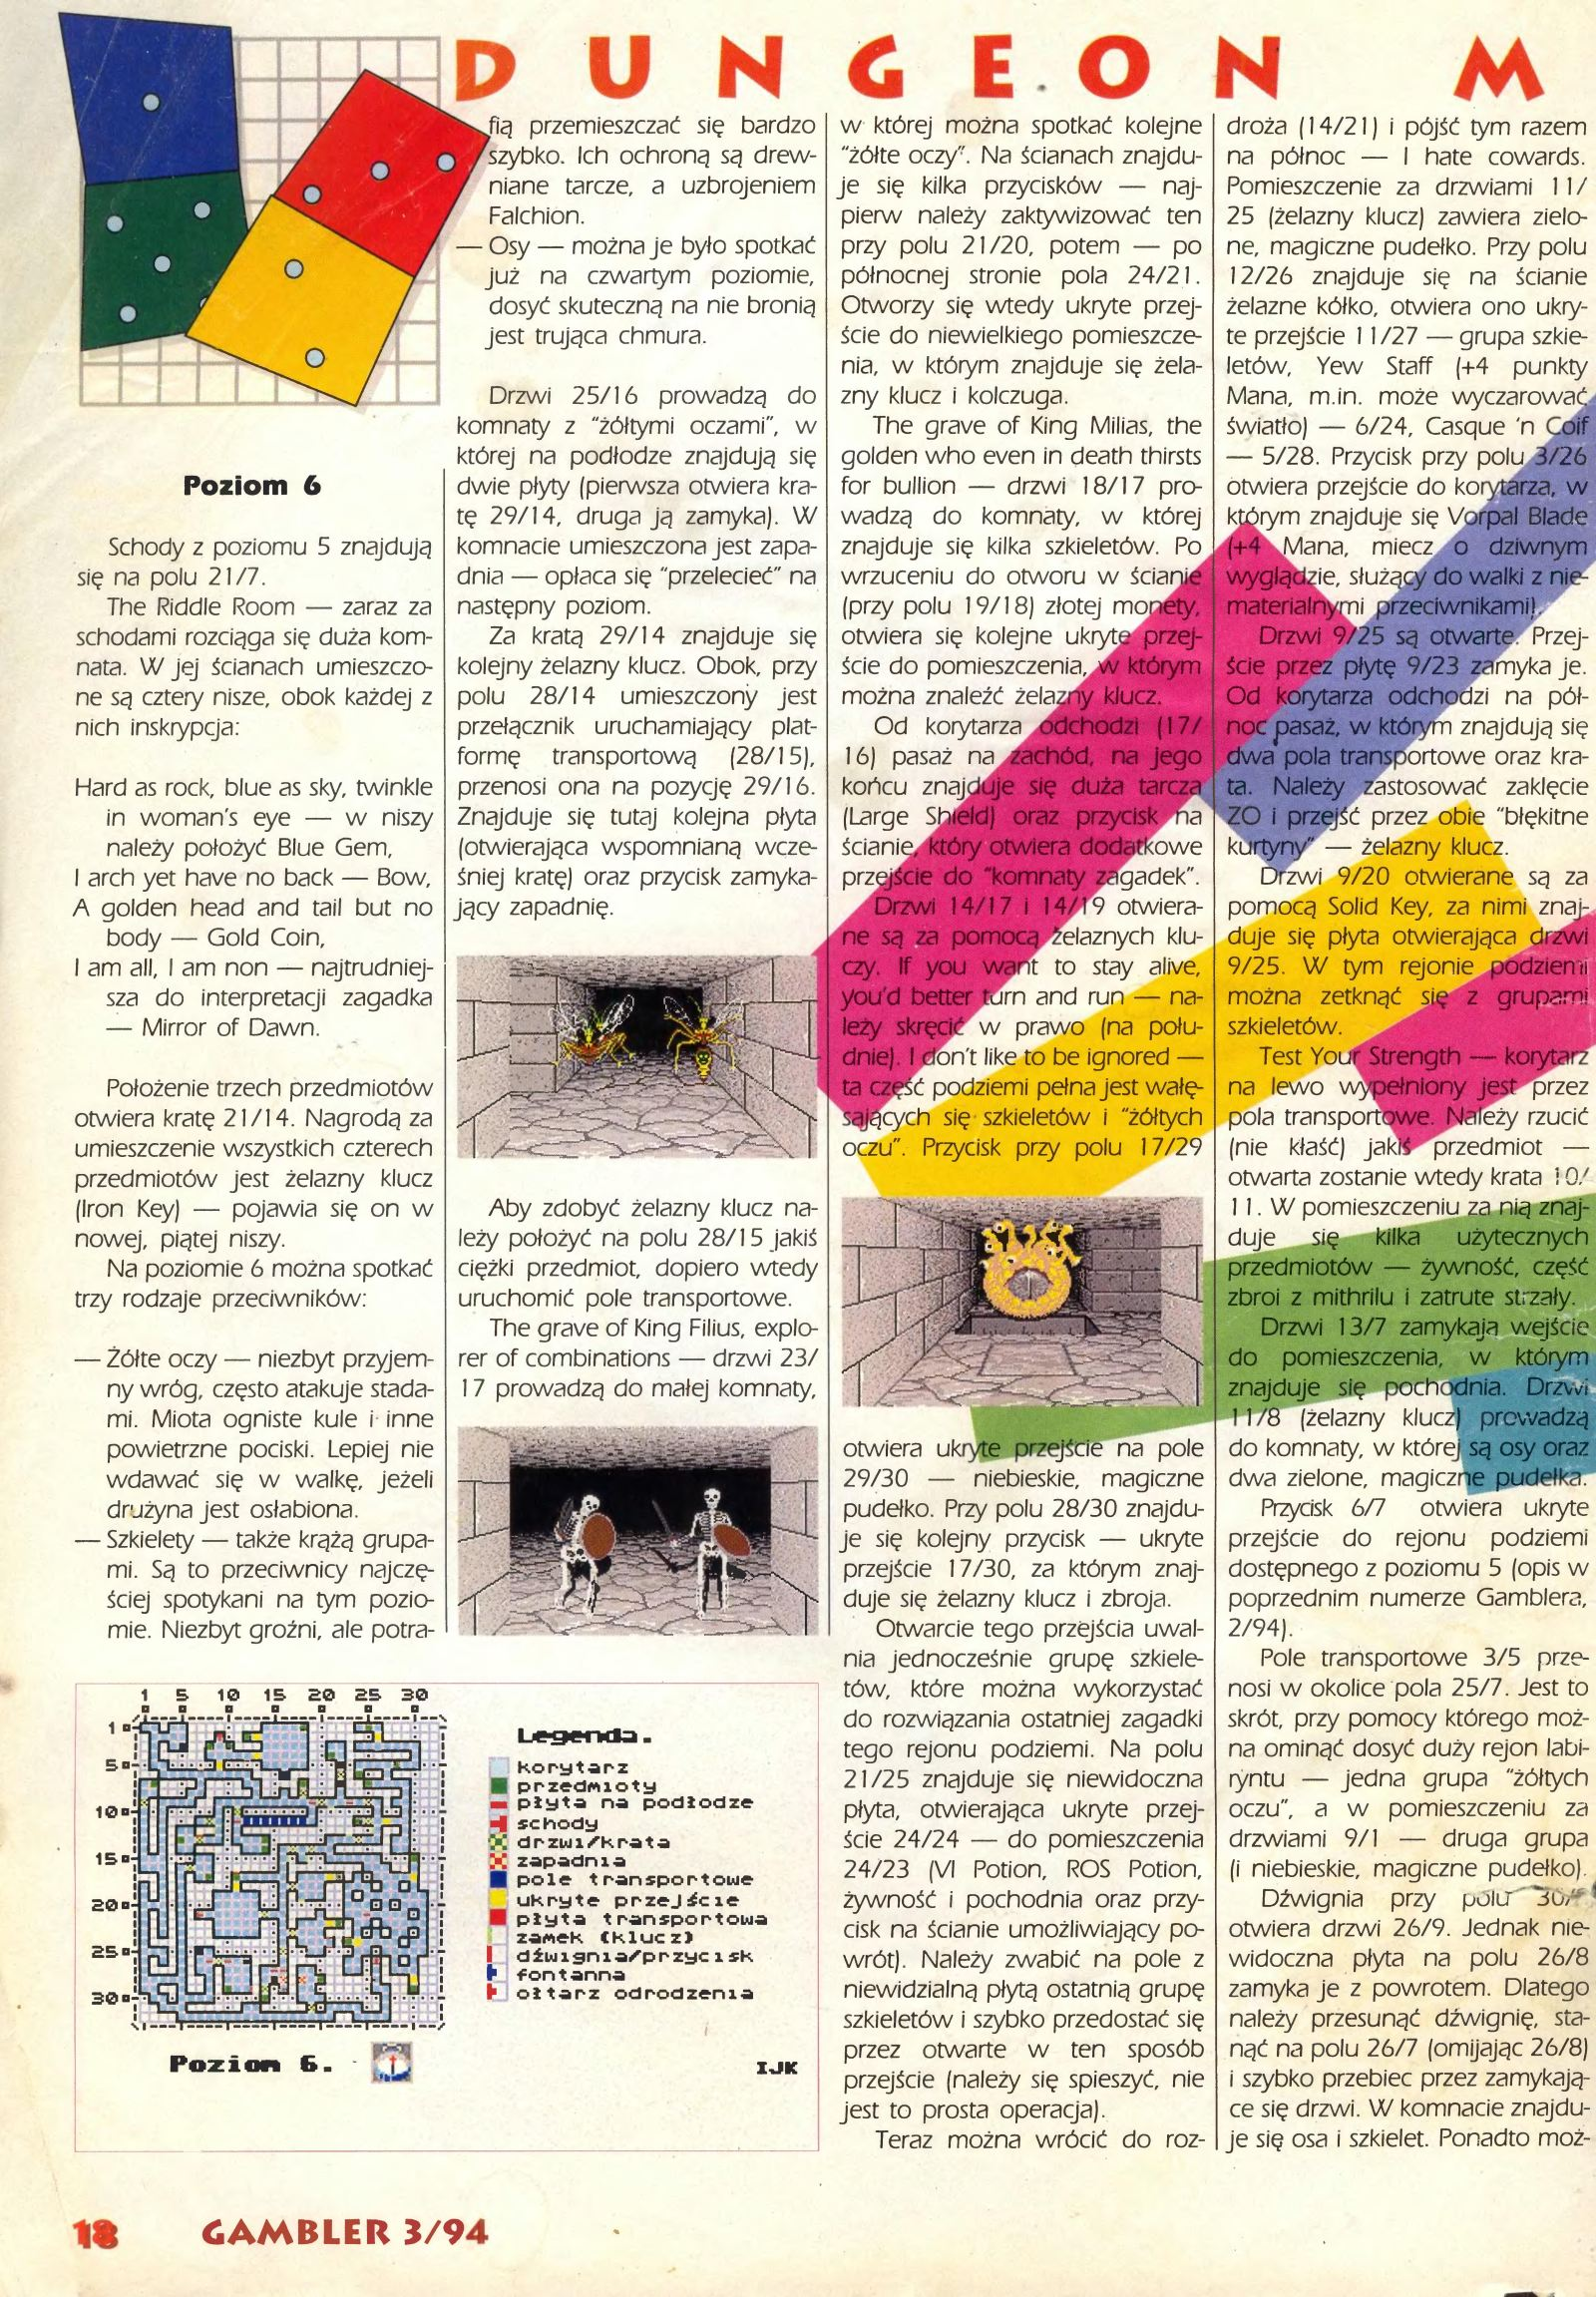 Dungeon Master Guide published in Polish magazine 'Gambler', March 1994, Page 18